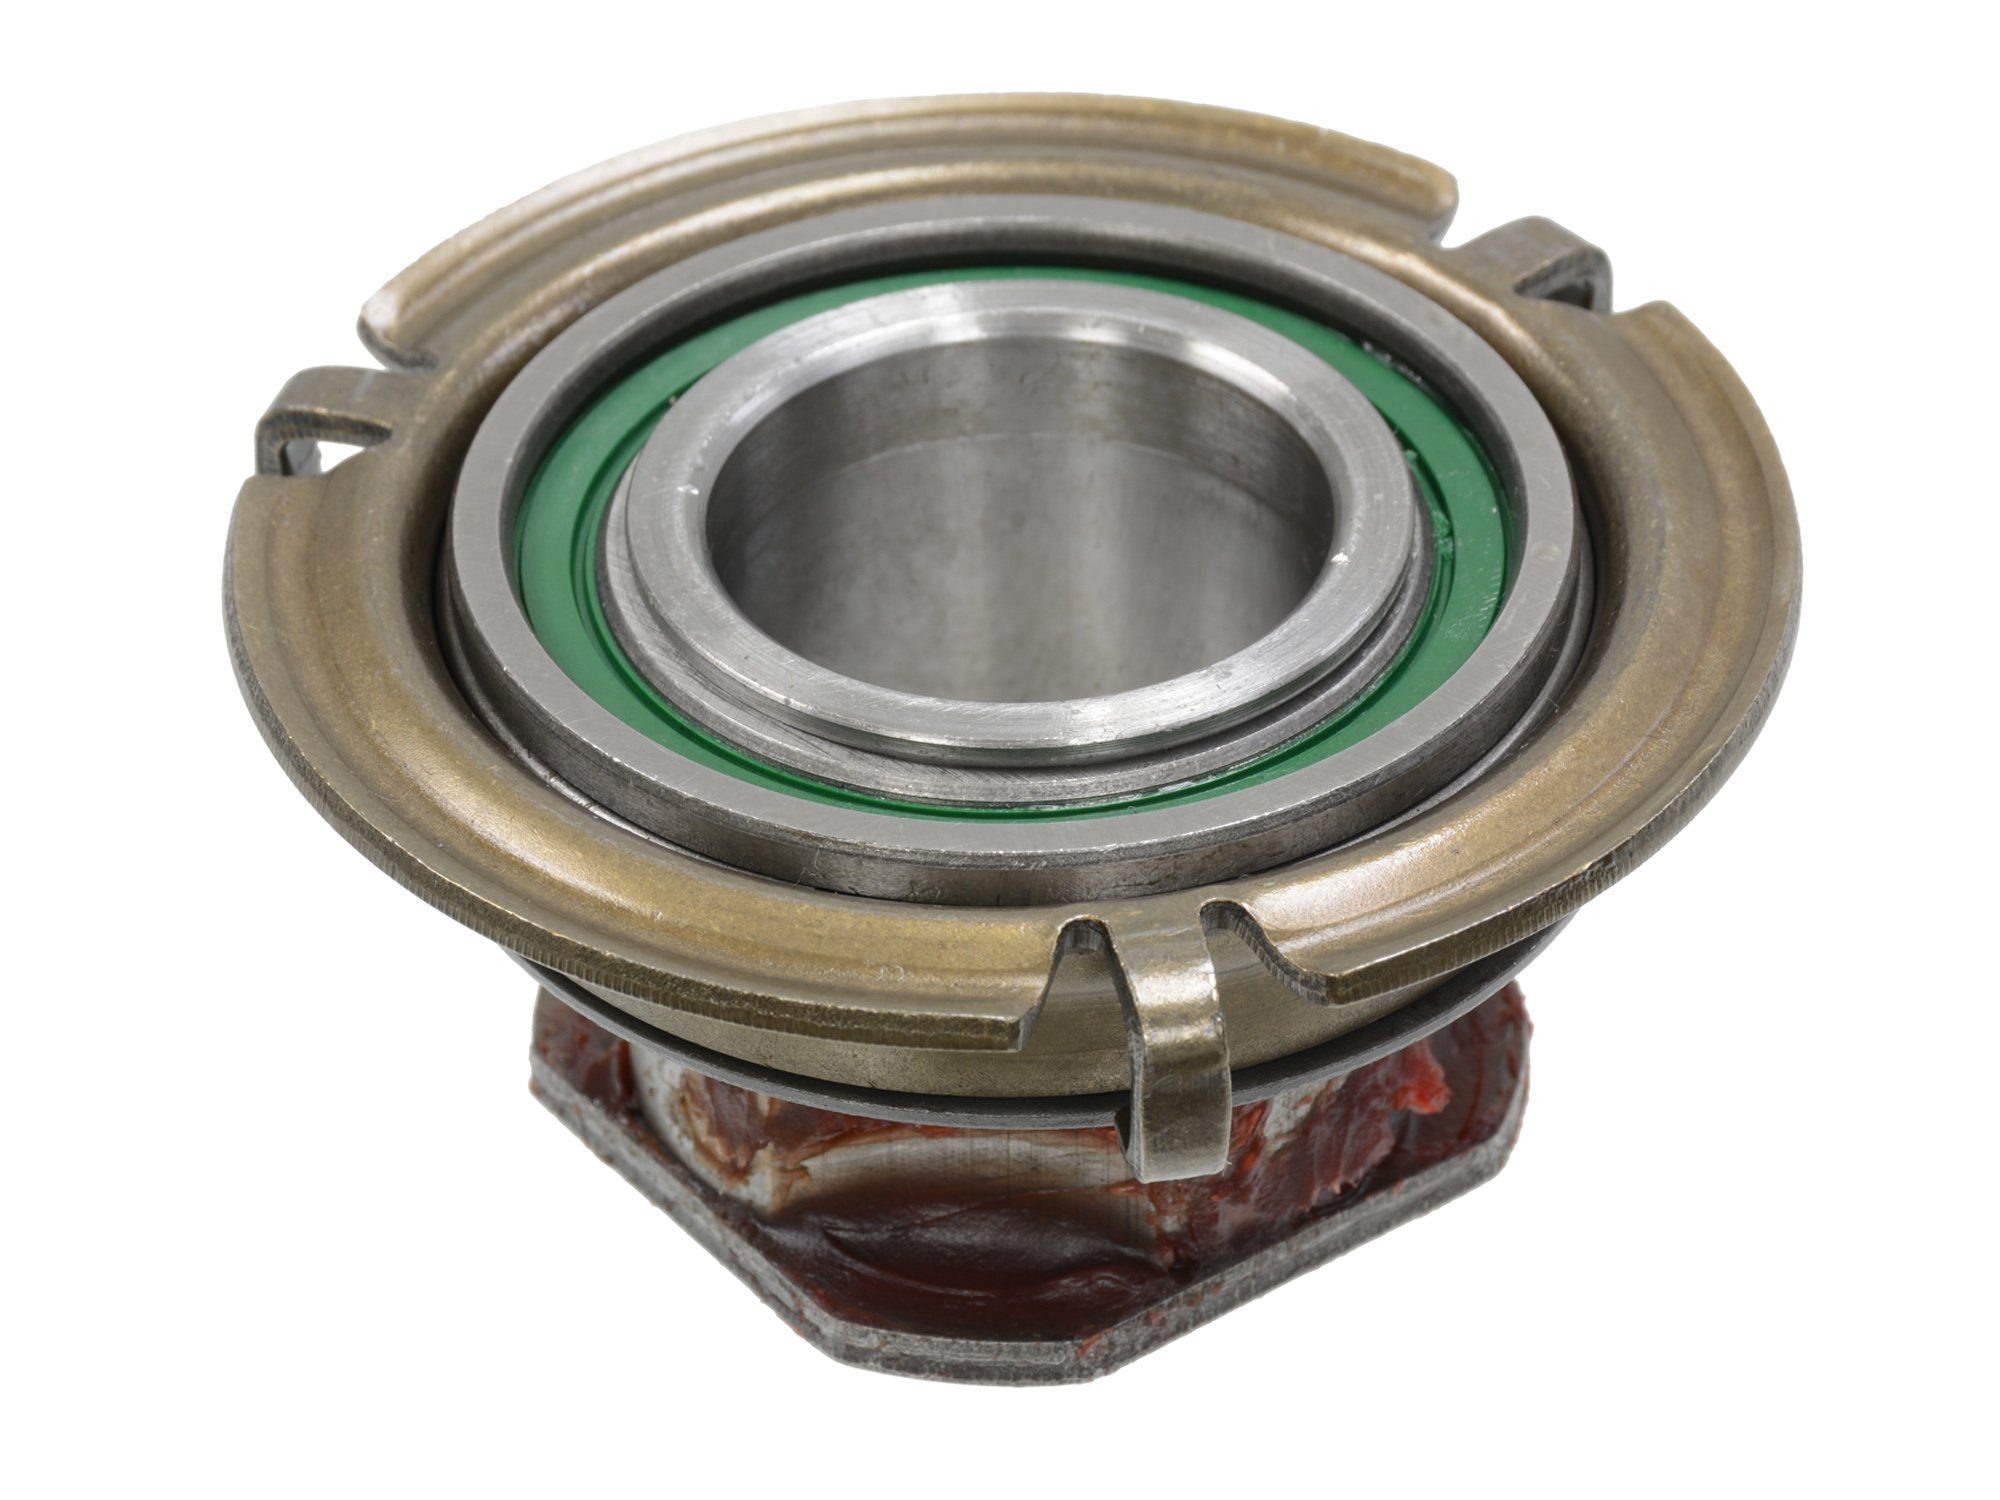 1989-1993 Corvette C4 Clutch Release / Throw Out Bearing